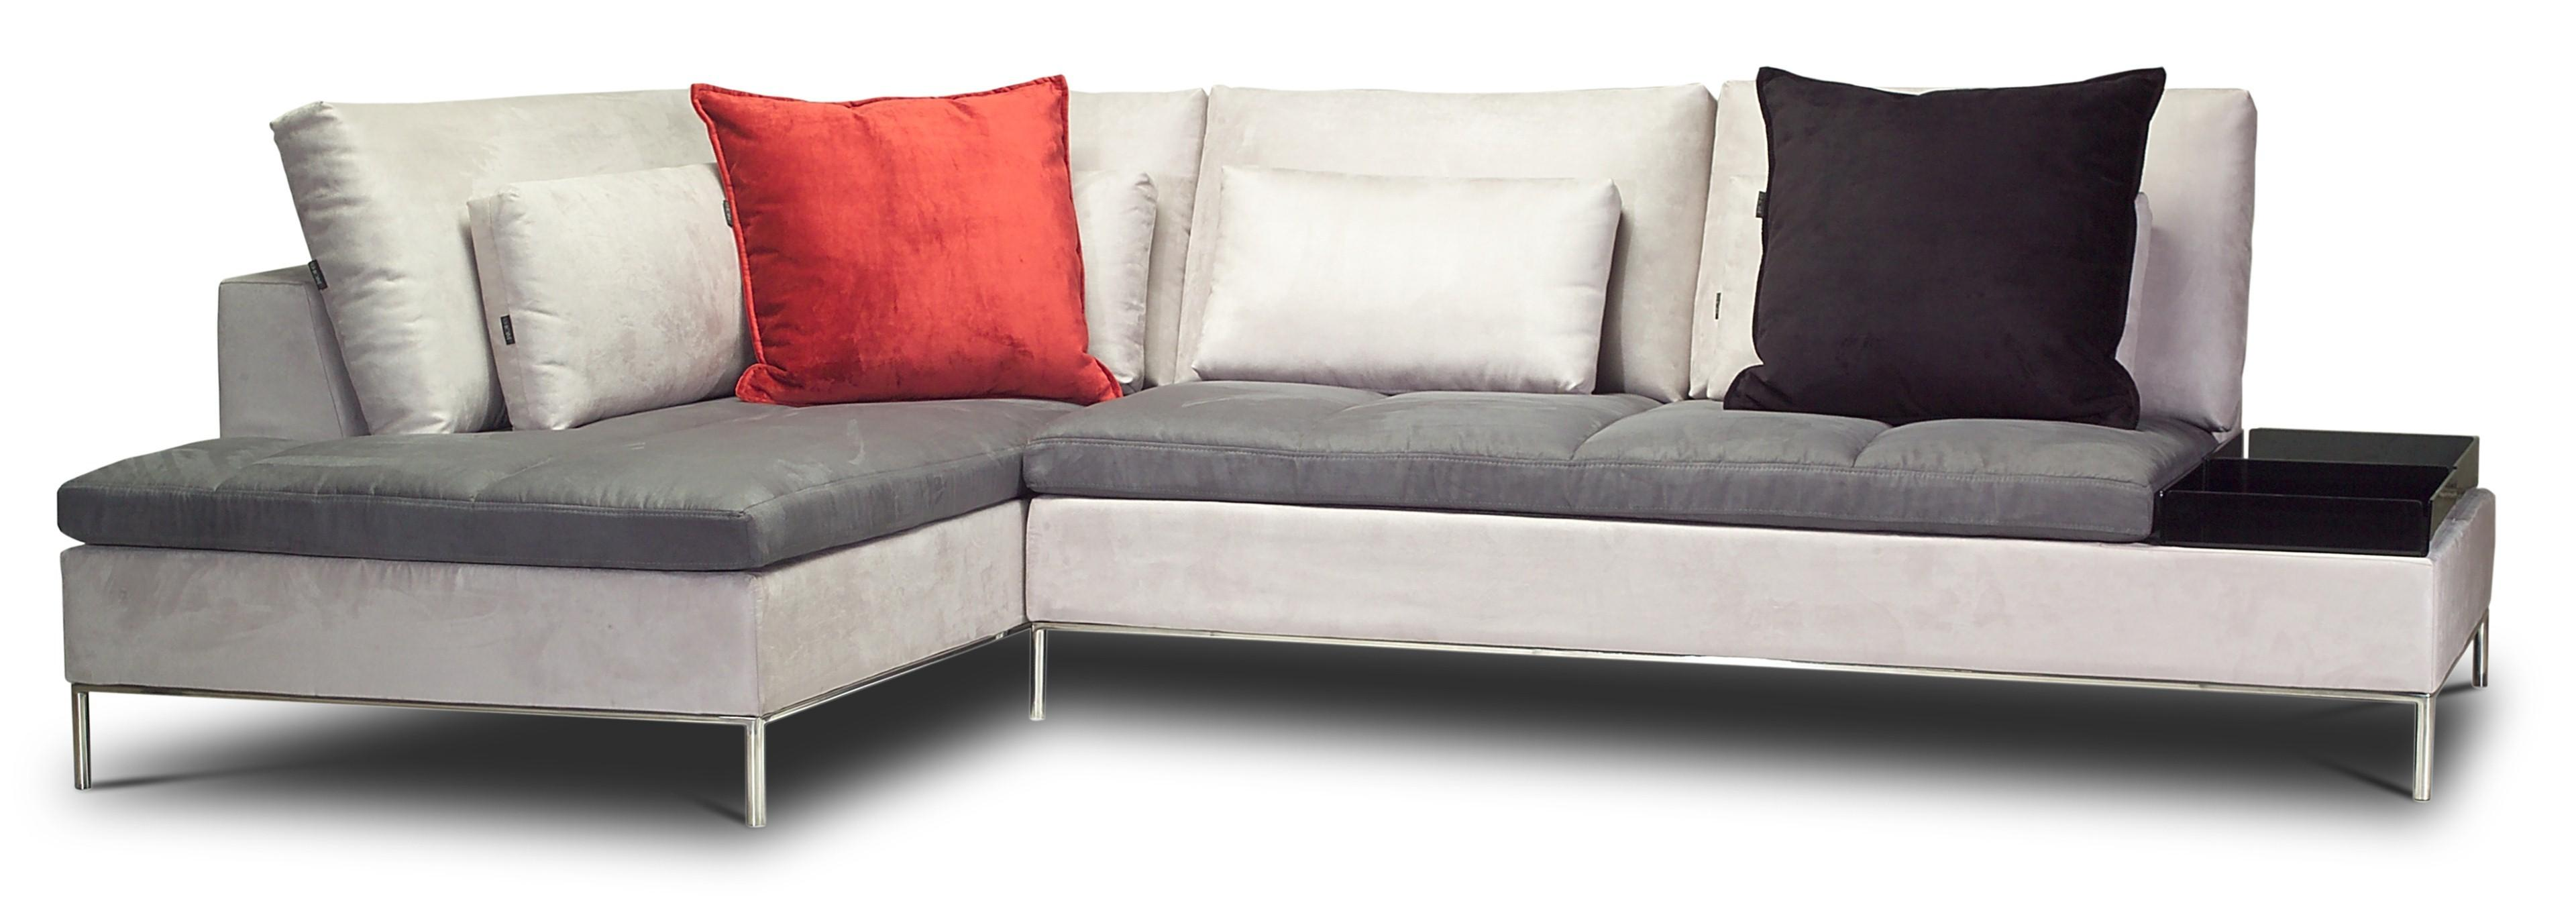 Cream Color Shaped Sectional Couch Gray Leather